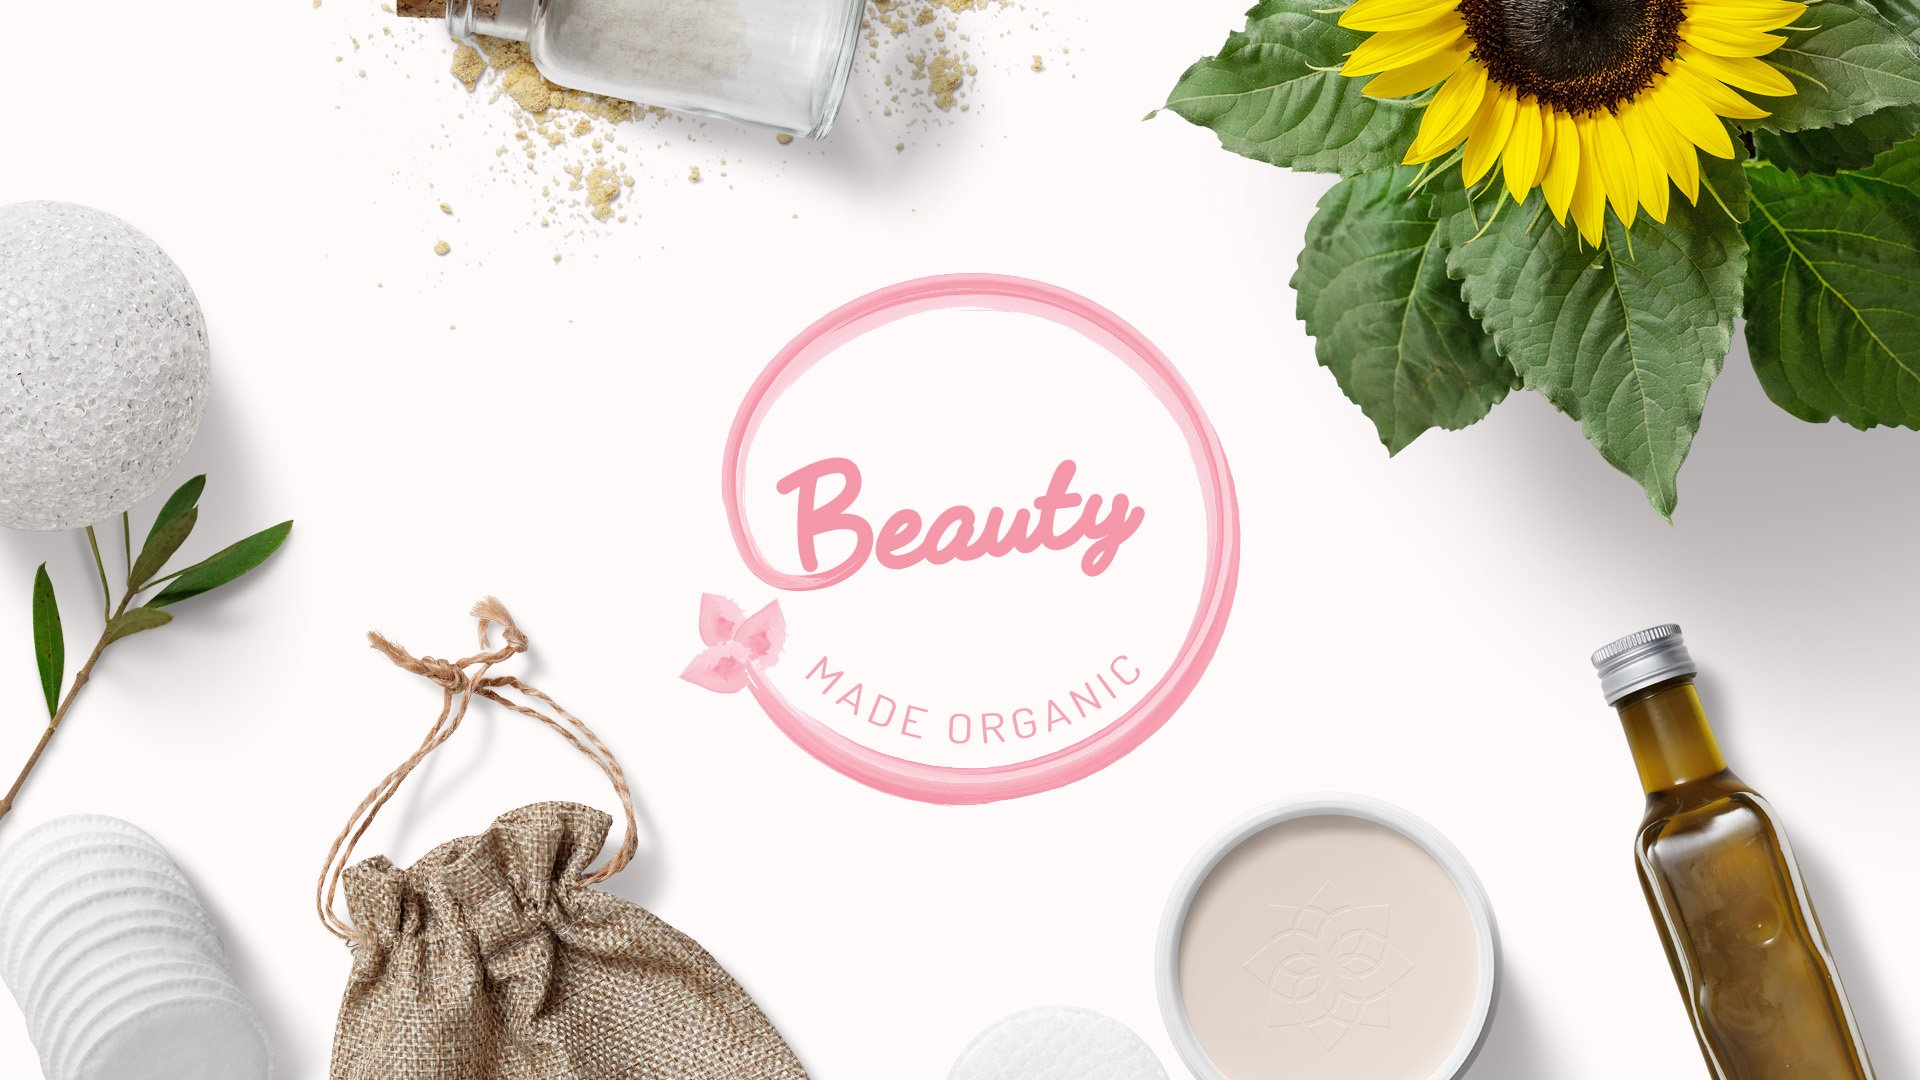 Beauty Made Organic